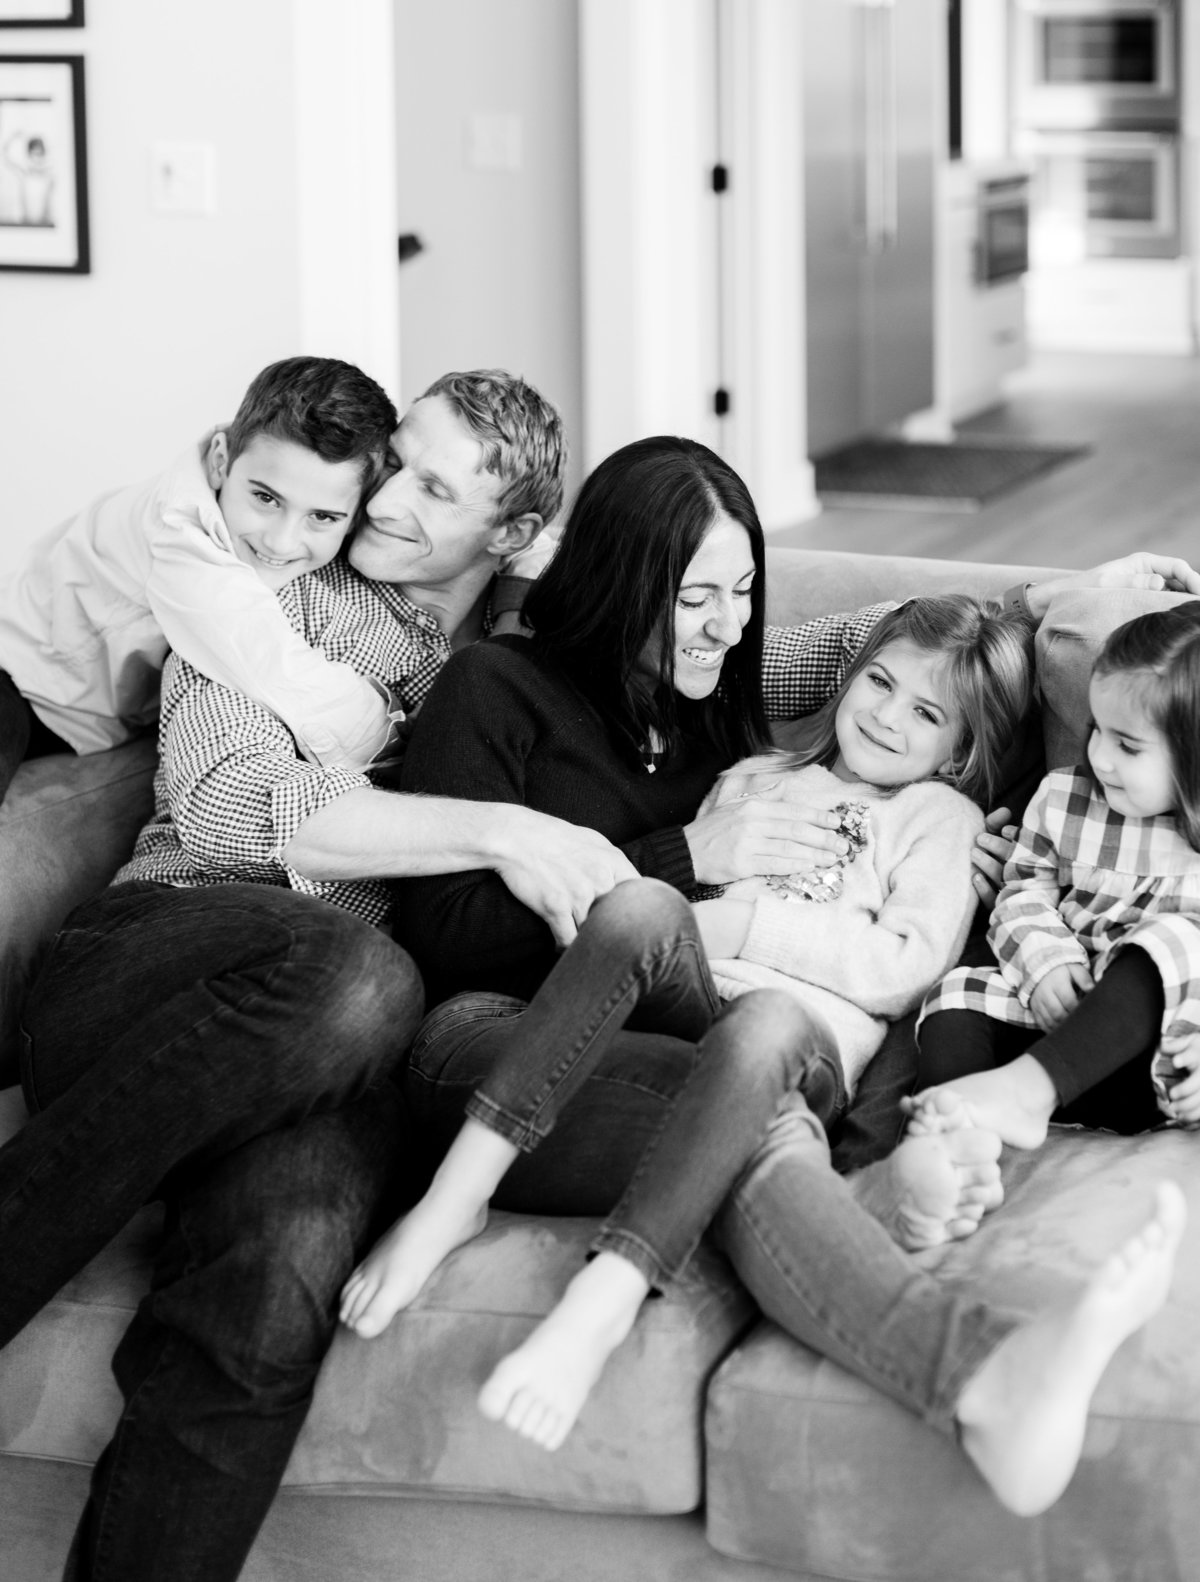 real life loves with family of five on couch